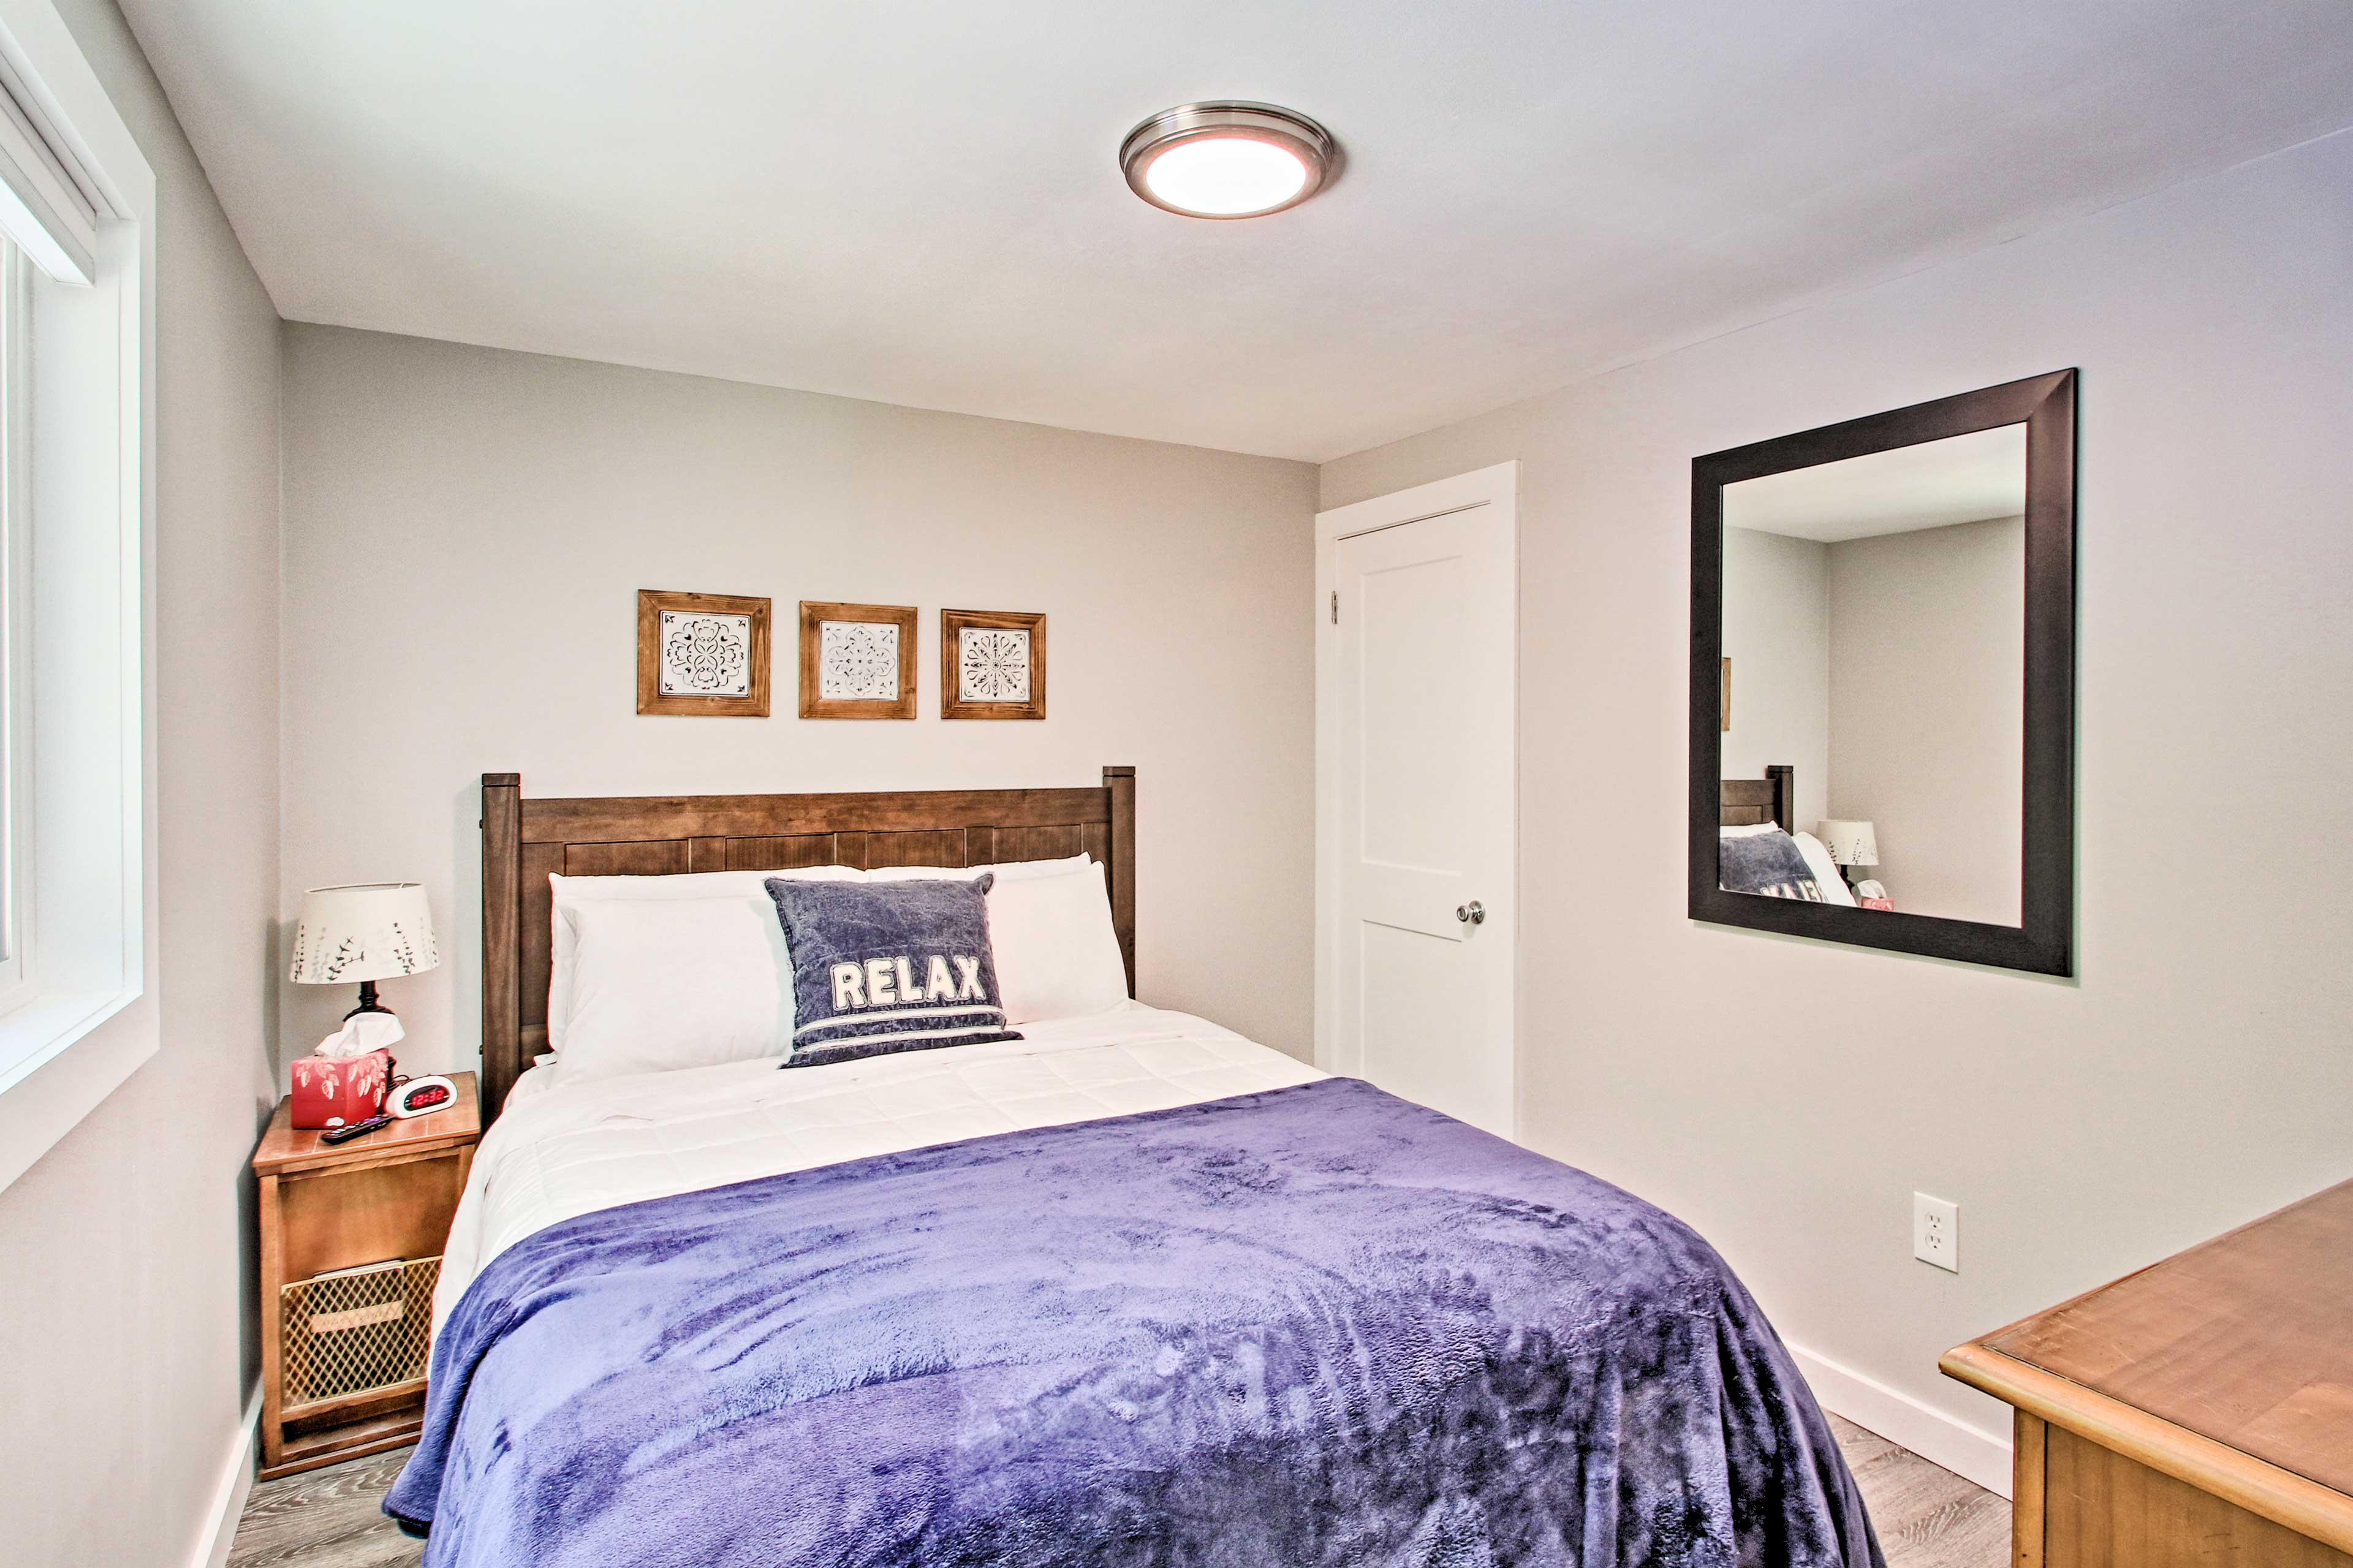 Two travelers can claim the home's lovely first bedroom.